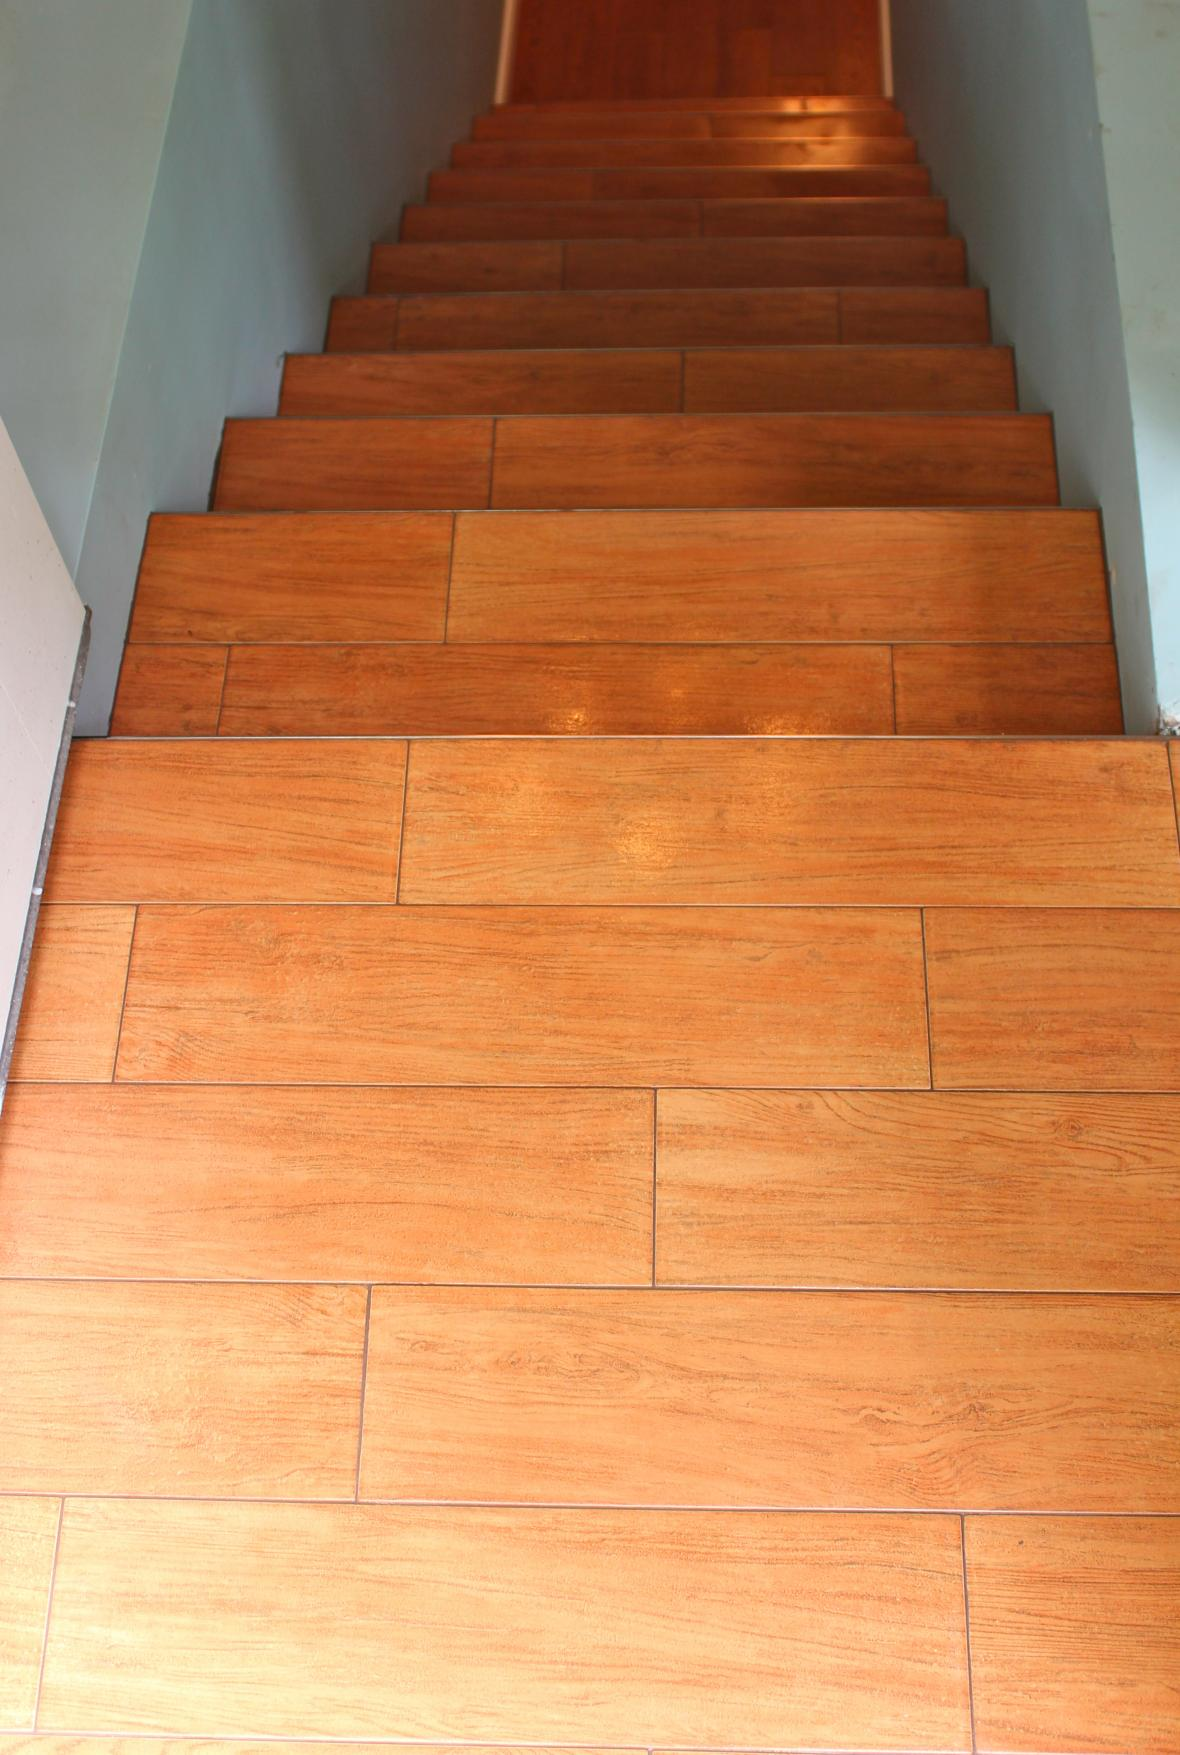 Stairs wood tile new jersey custom tile - Stairs with tile and wood ...